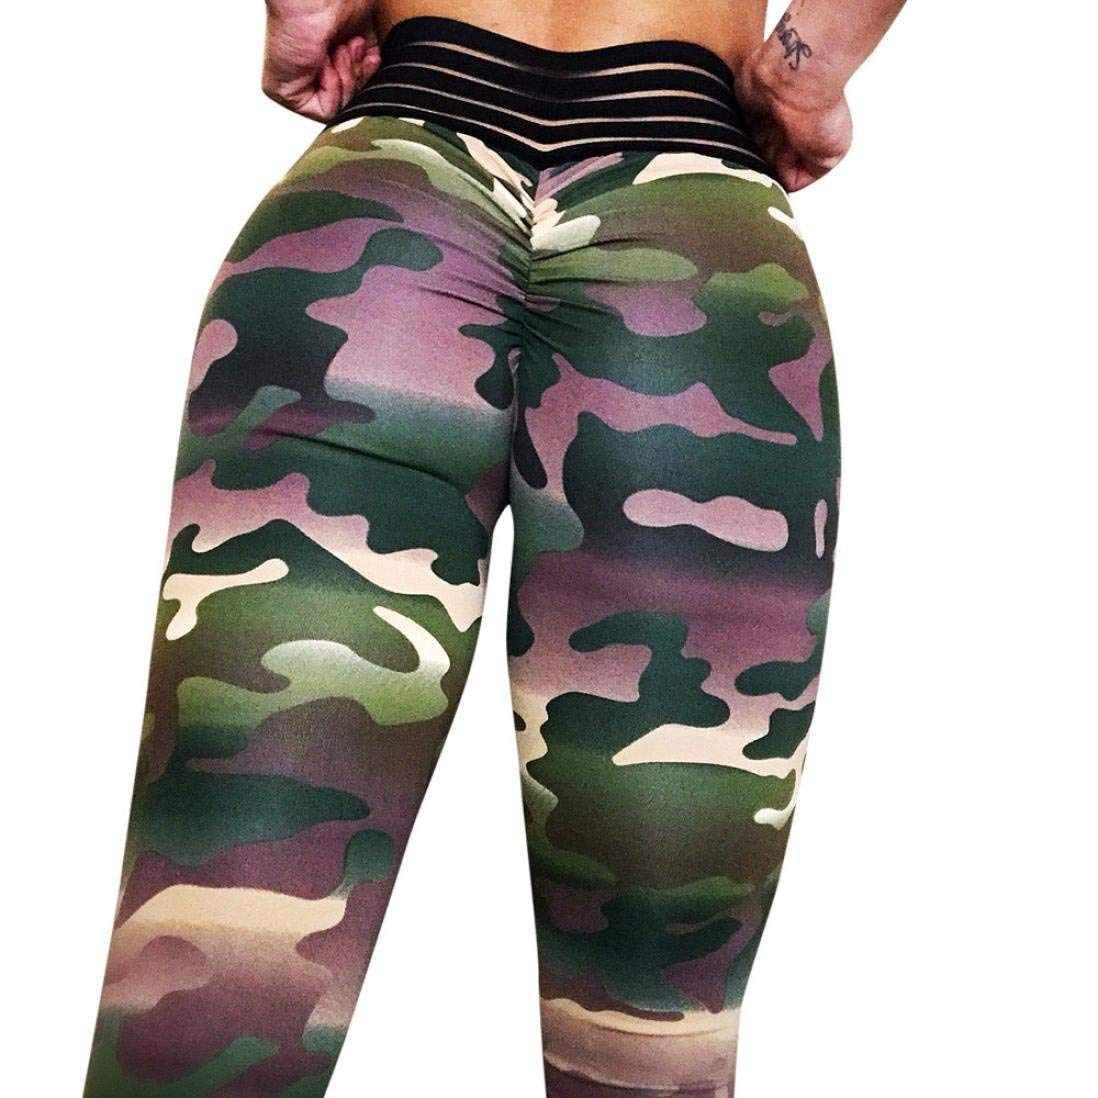 Clearance Sale Women Camouflage Trousers,Vanvler Ladies Leggings Sexy Yoga Pants Push Up for Fitness Sports Gym Running Workout (M, Green)